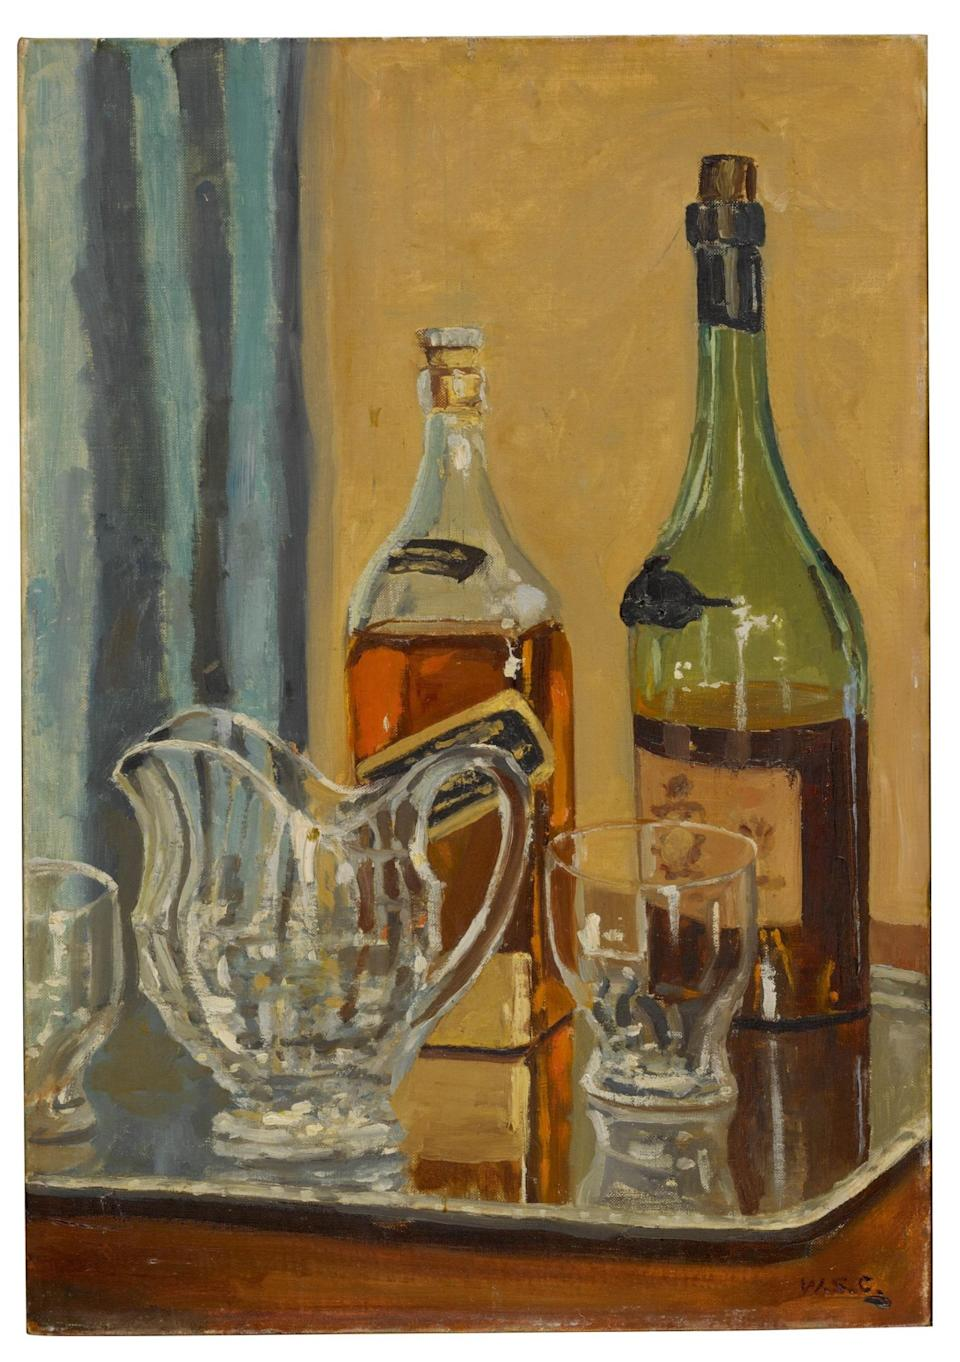 WINSTON CHURCHILL, JUG WITH BOTTLES